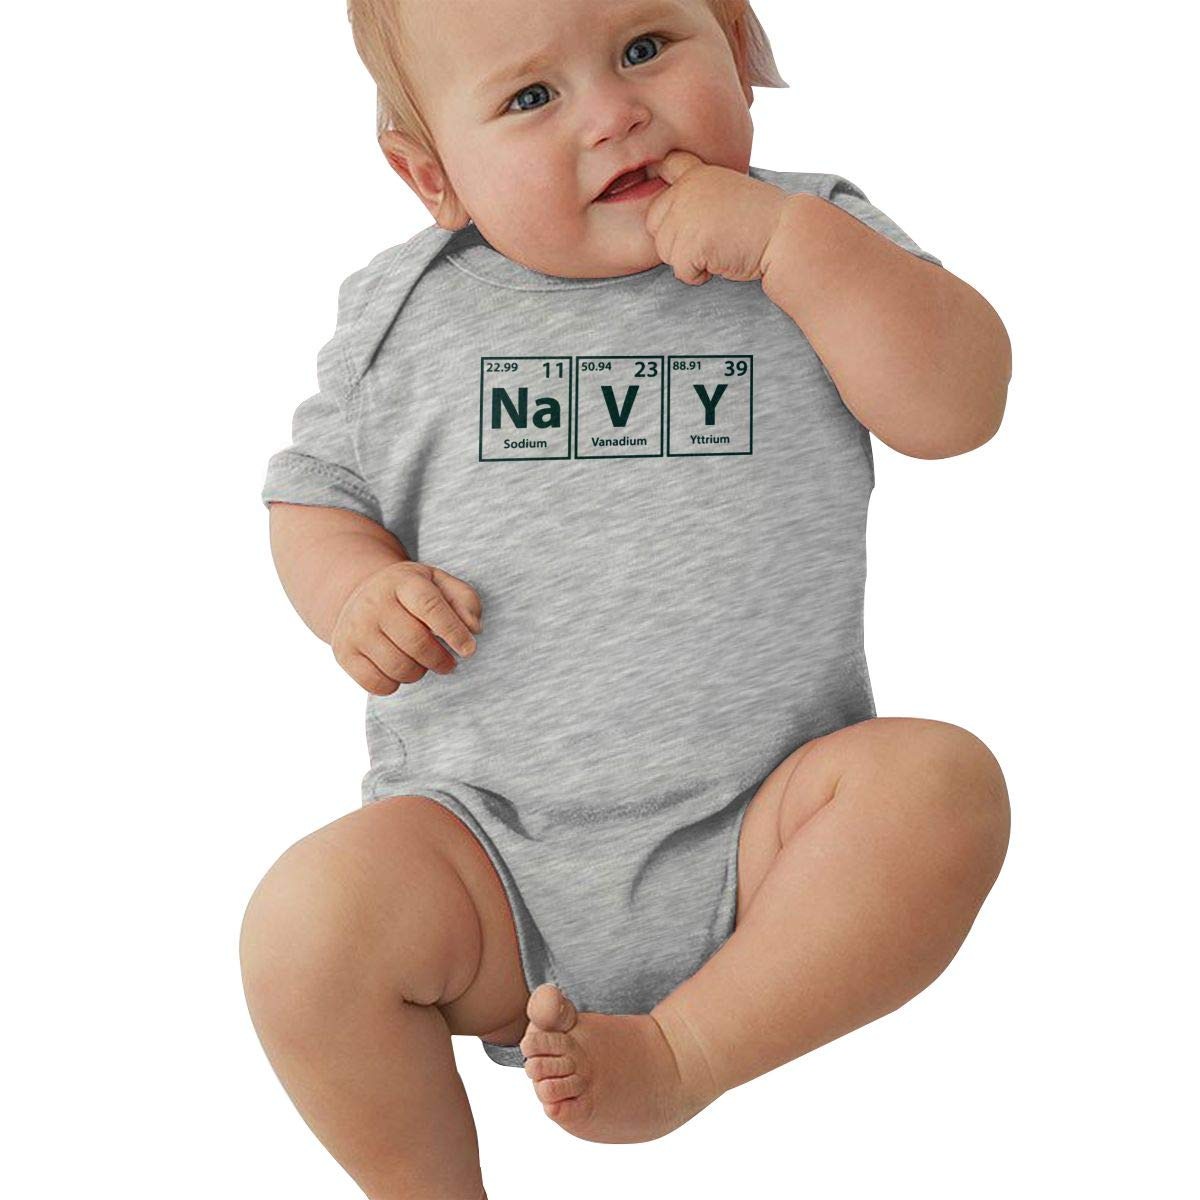 Periodic Elements Spelling Kawaii Summer Baby Boys /& Girls Short Sleeve Bodysuit Jumpsuit Outfits Shirt Navy Na-V-Y